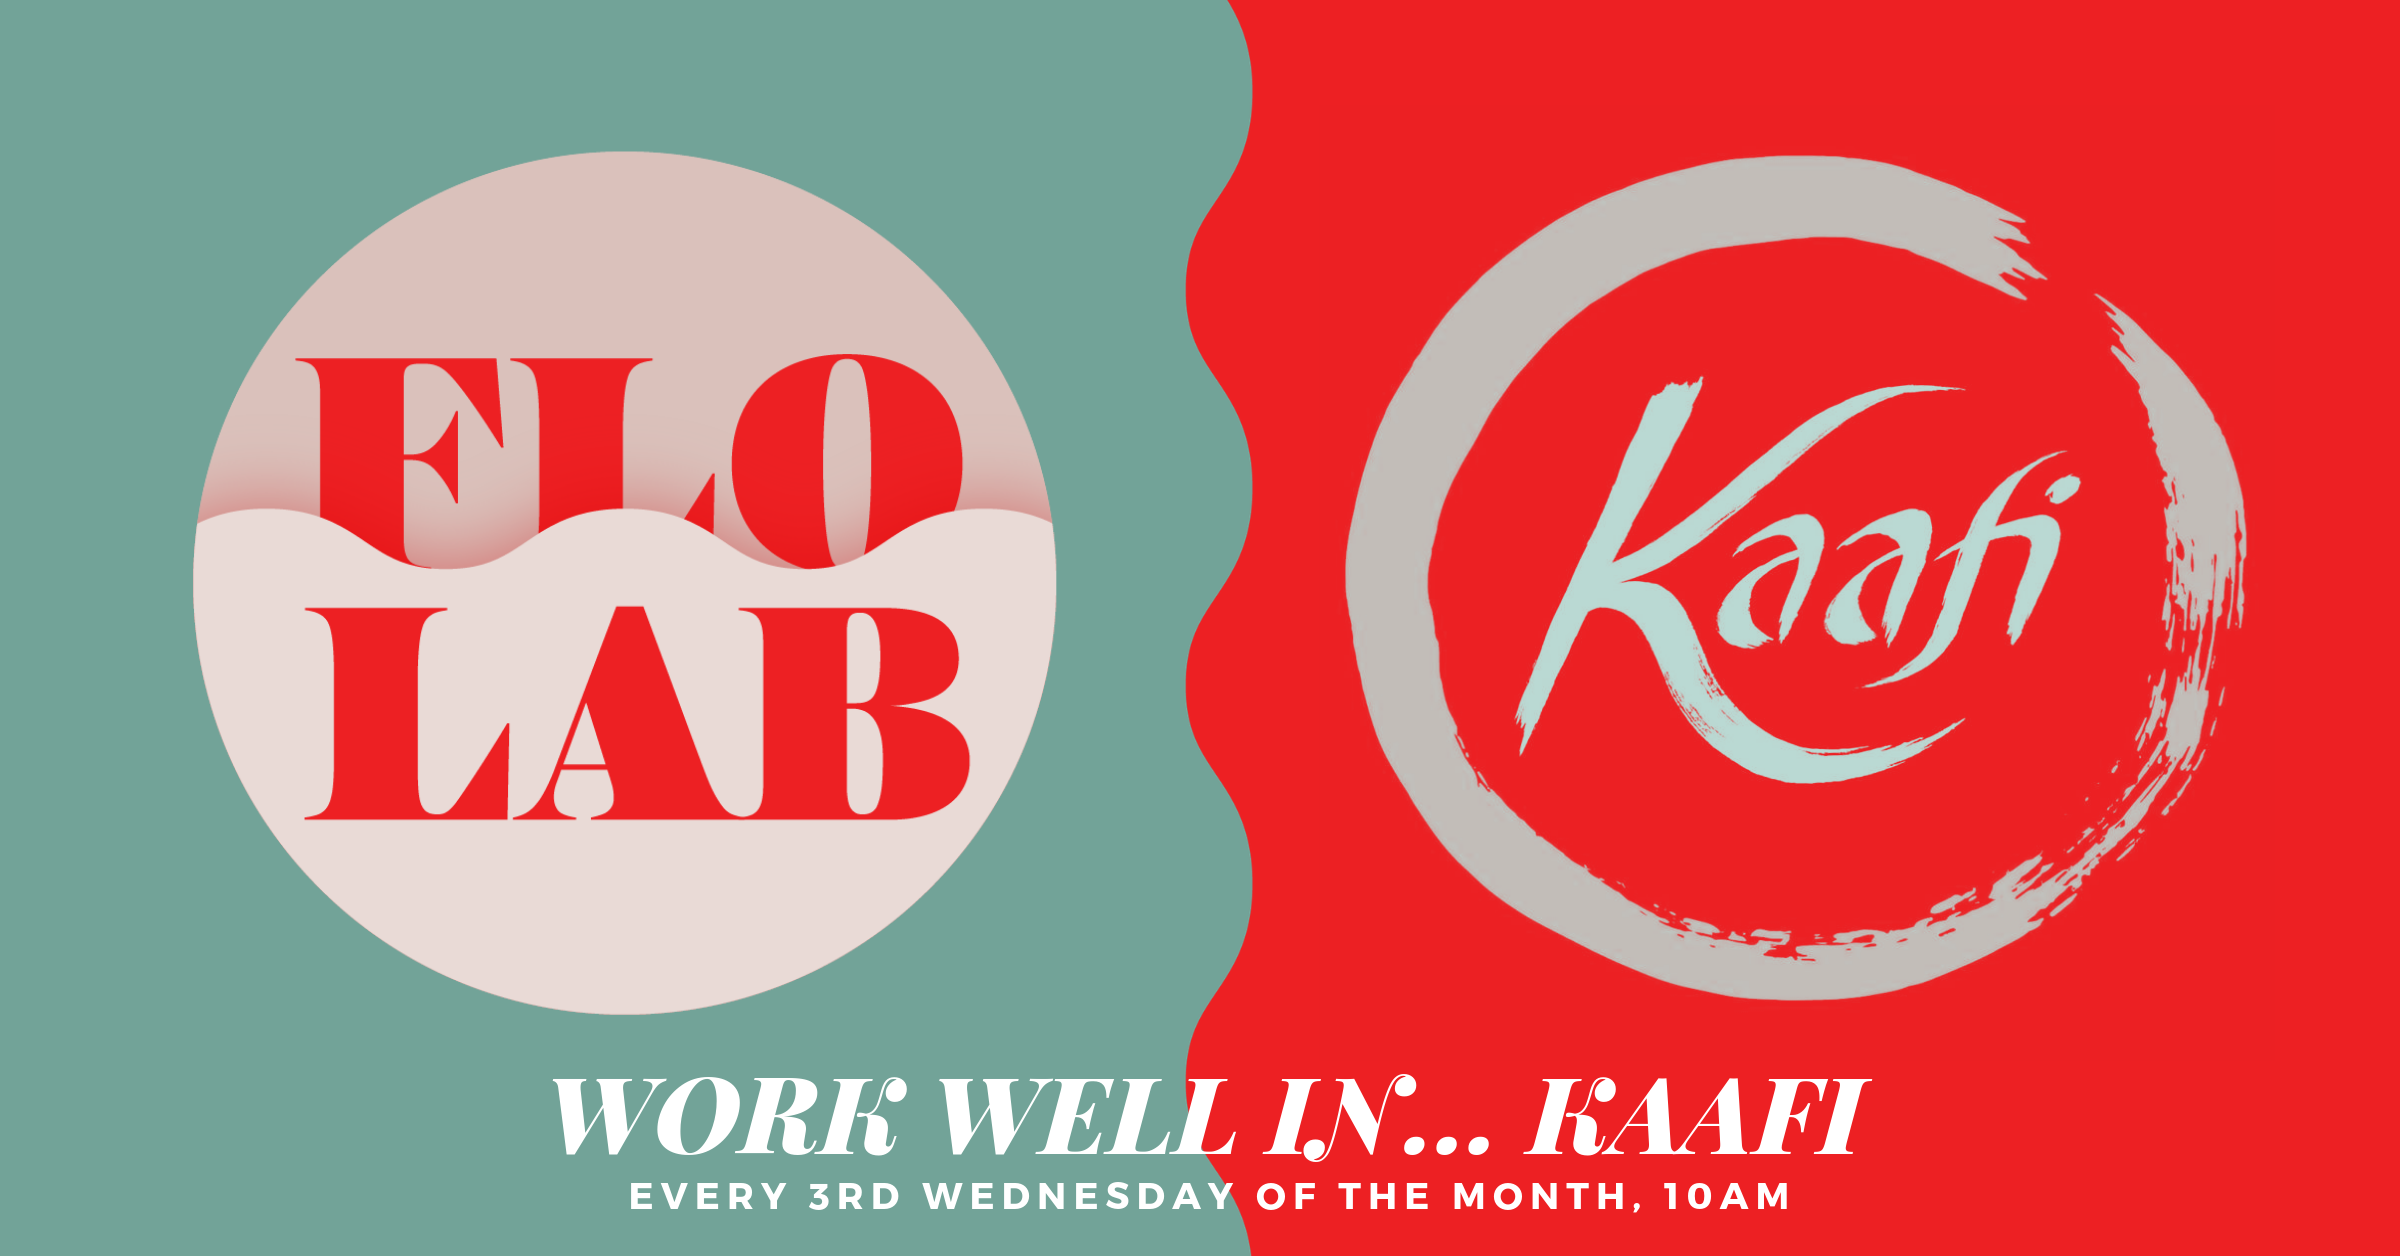 Work Well in... Kaafi Facebook banner.png